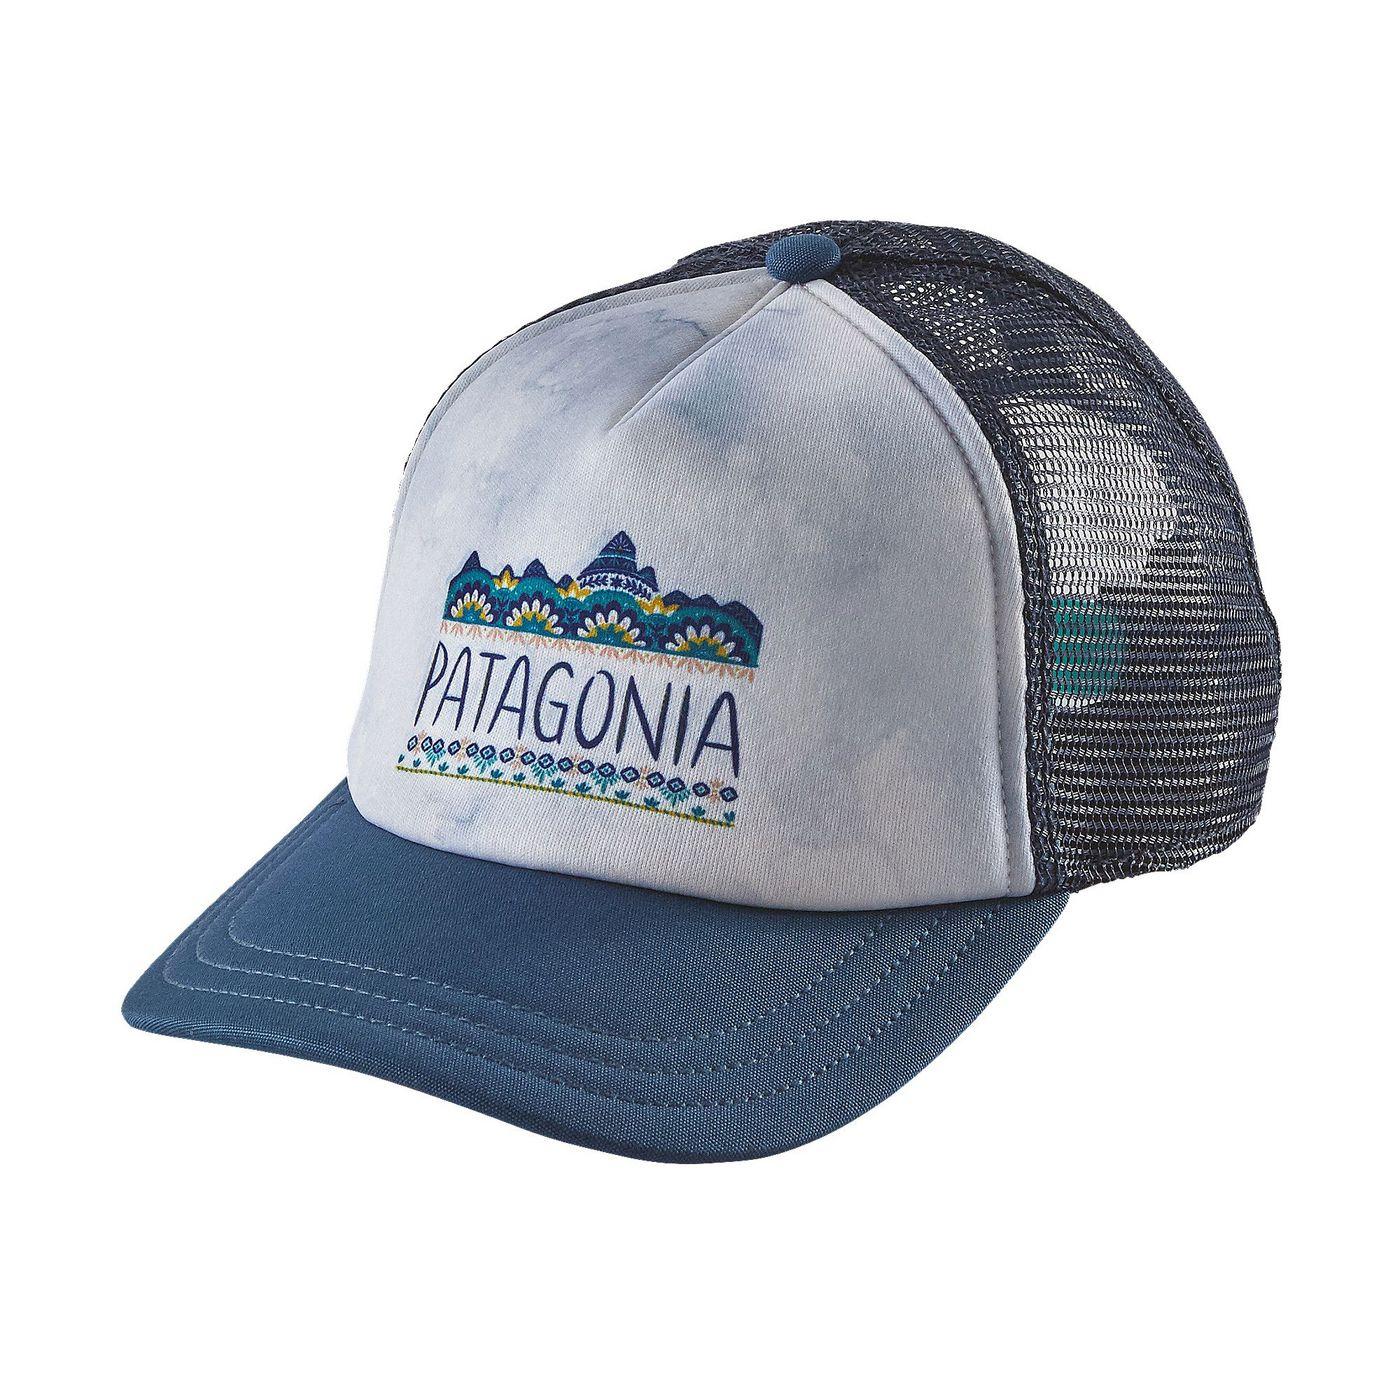 Patagonia Femme Fitz Roy Interstate Hat  7a3ccddef7d